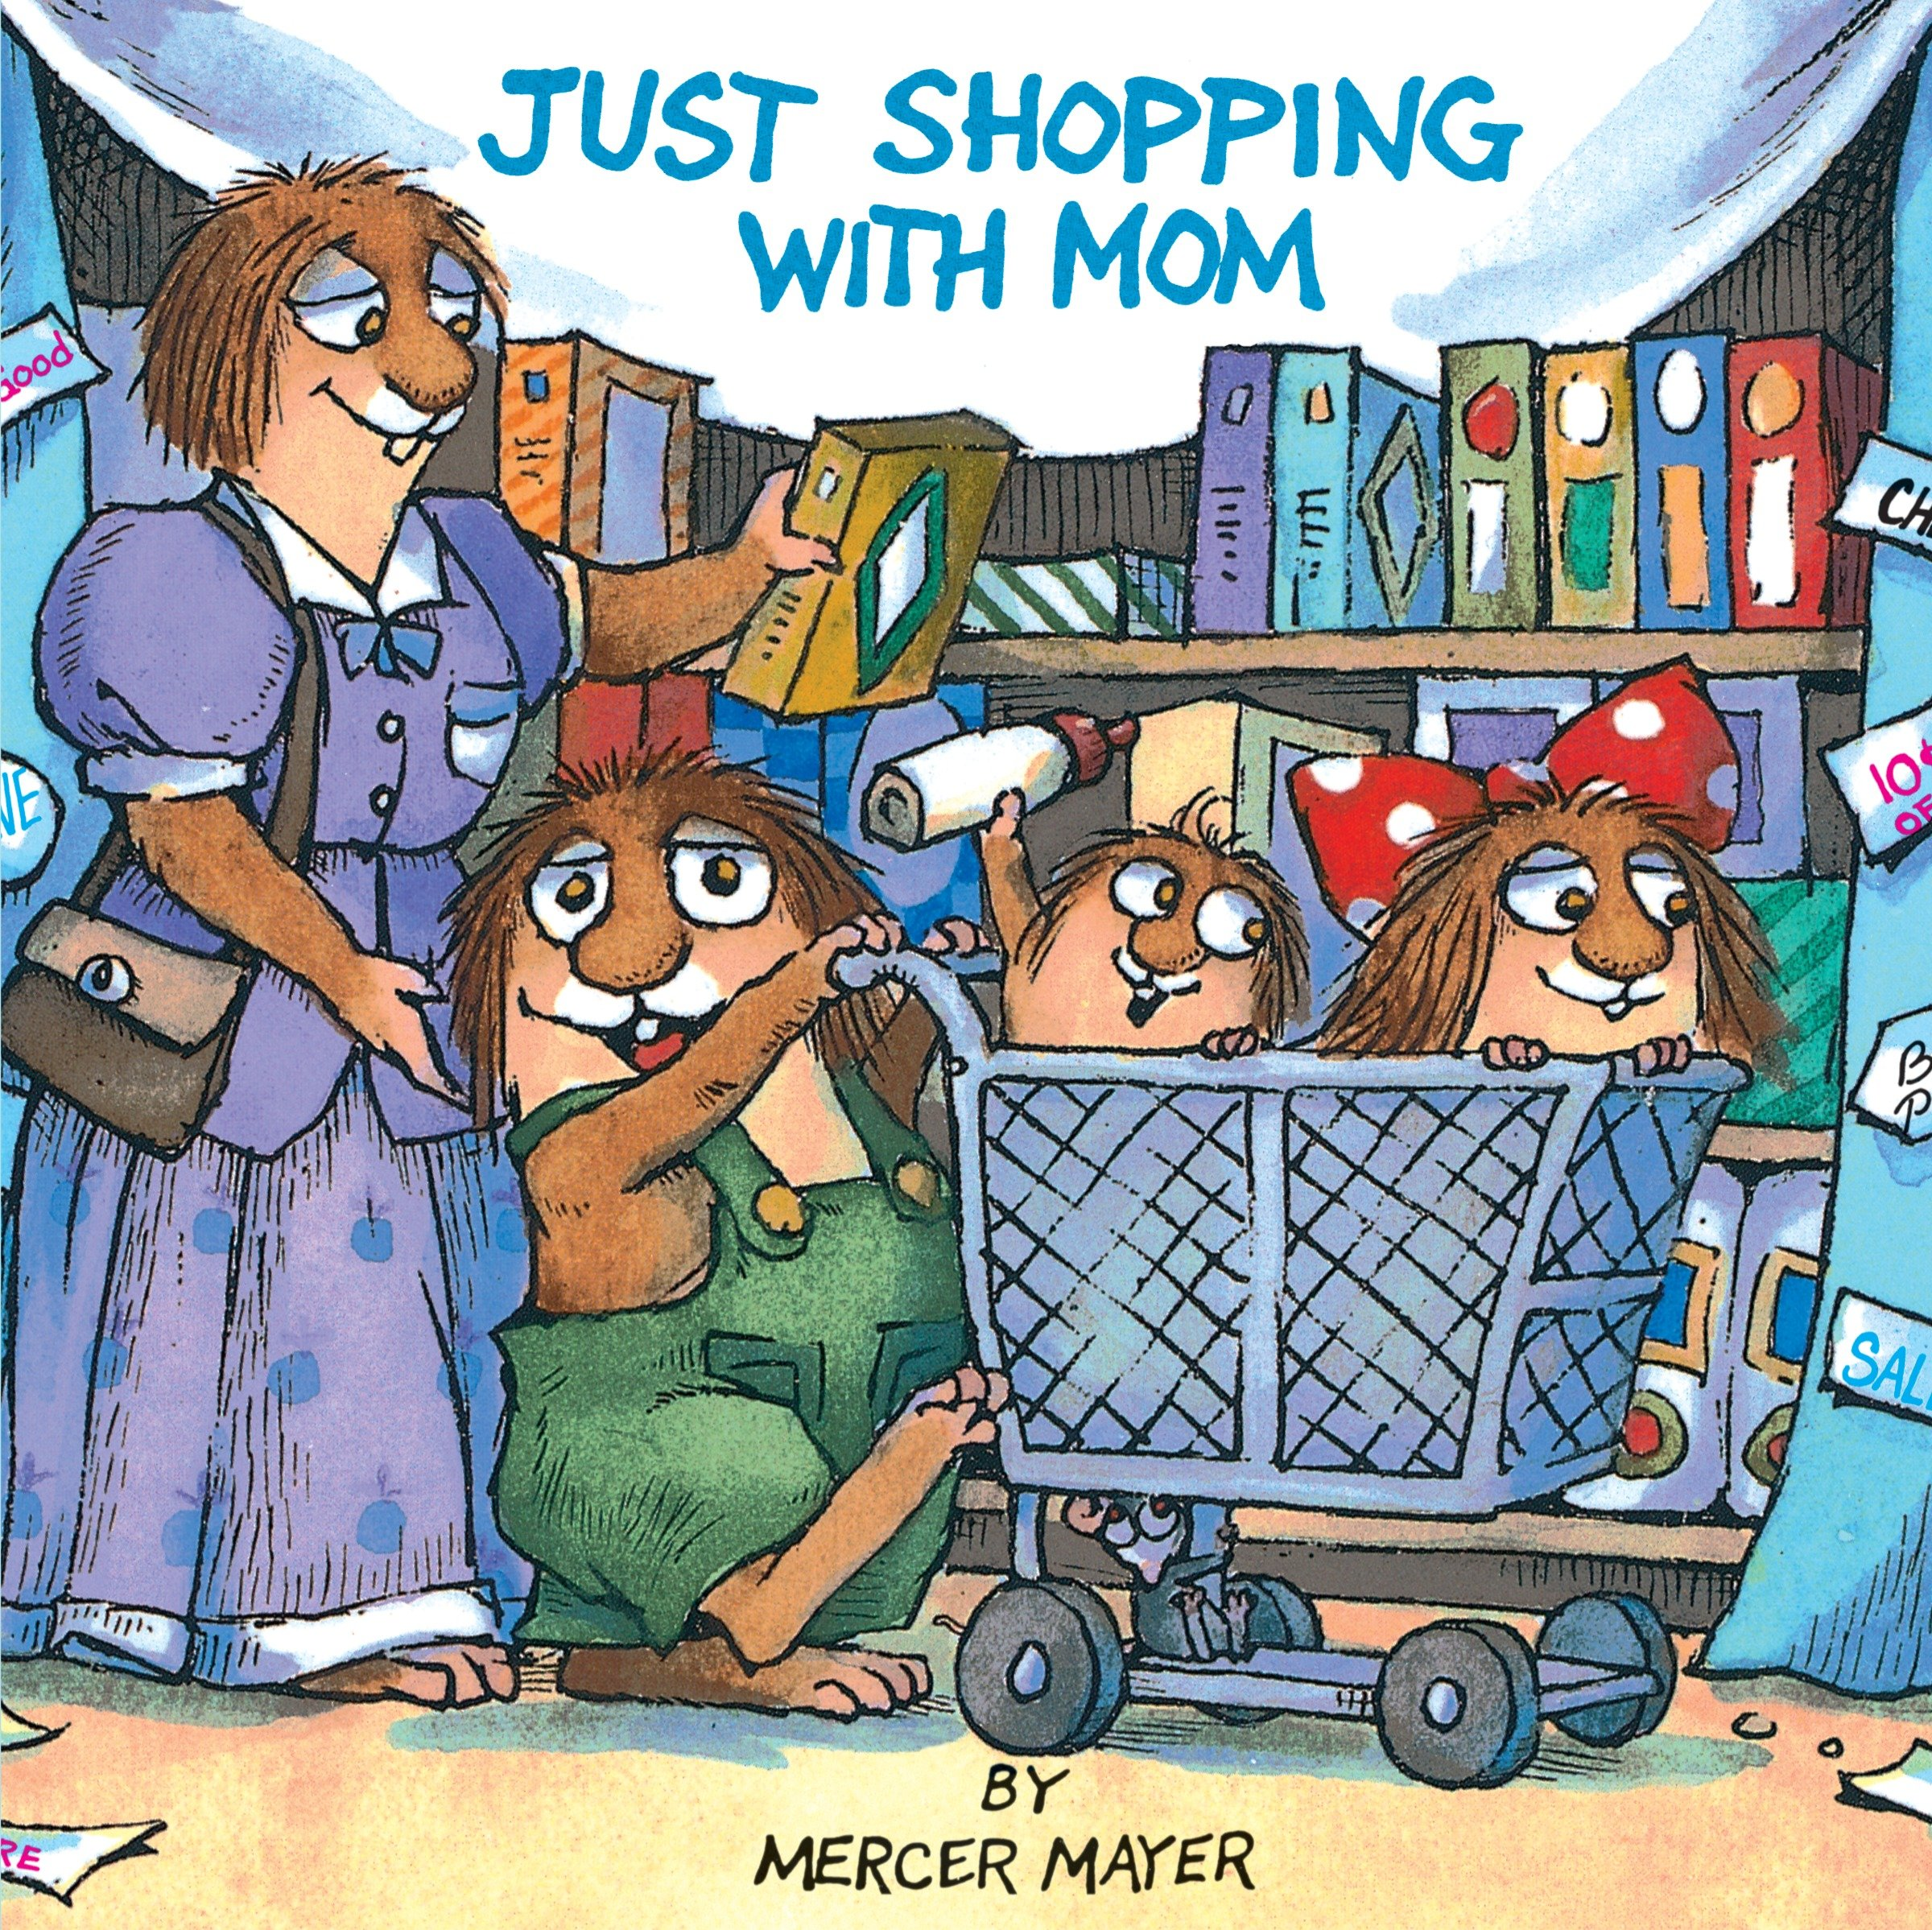 Book Just Shopping With Mom (little Critter) by Mercer Mayer